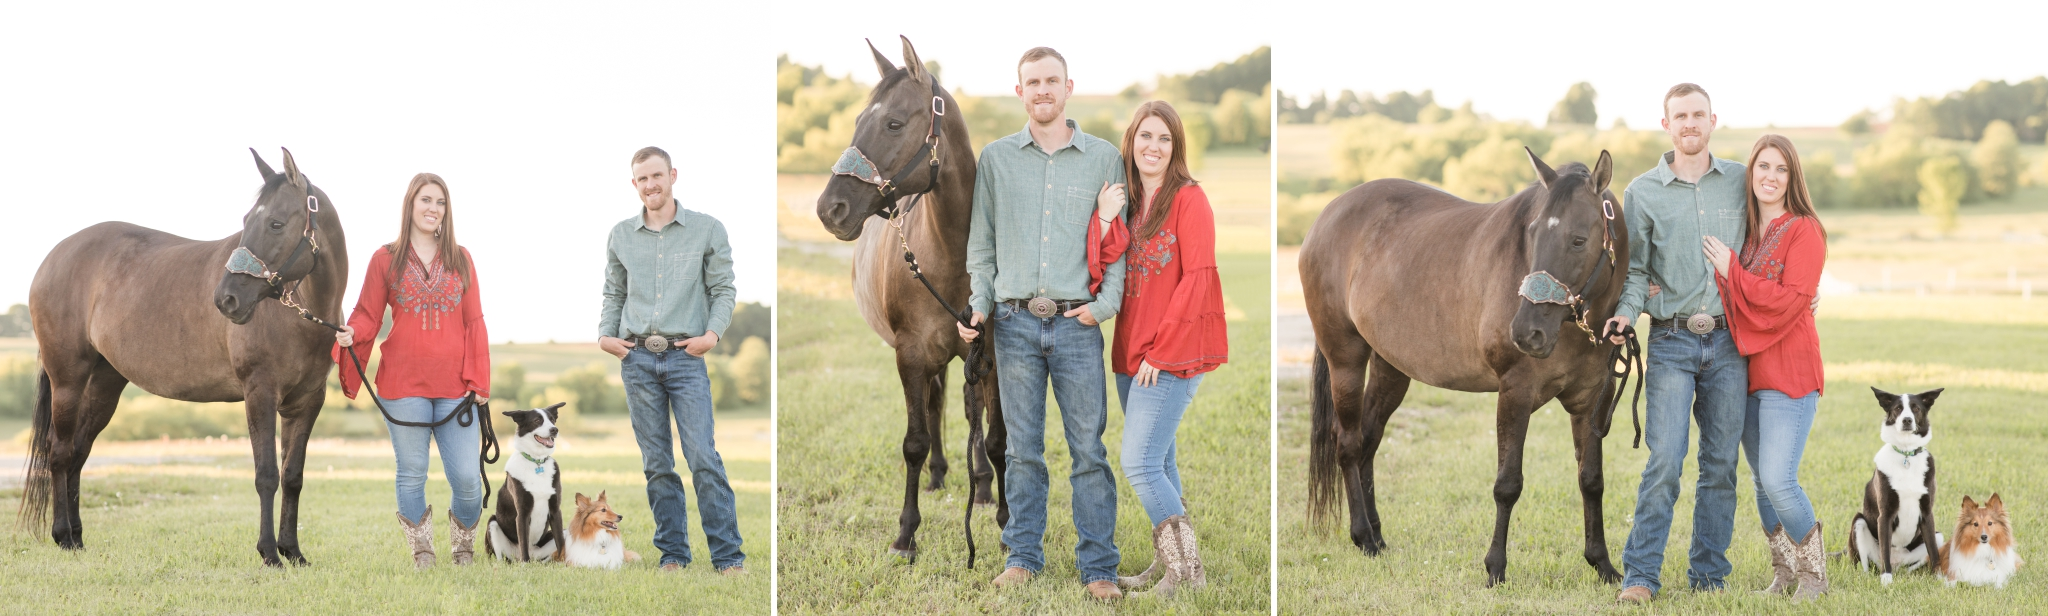 Family photos with horses and dogs